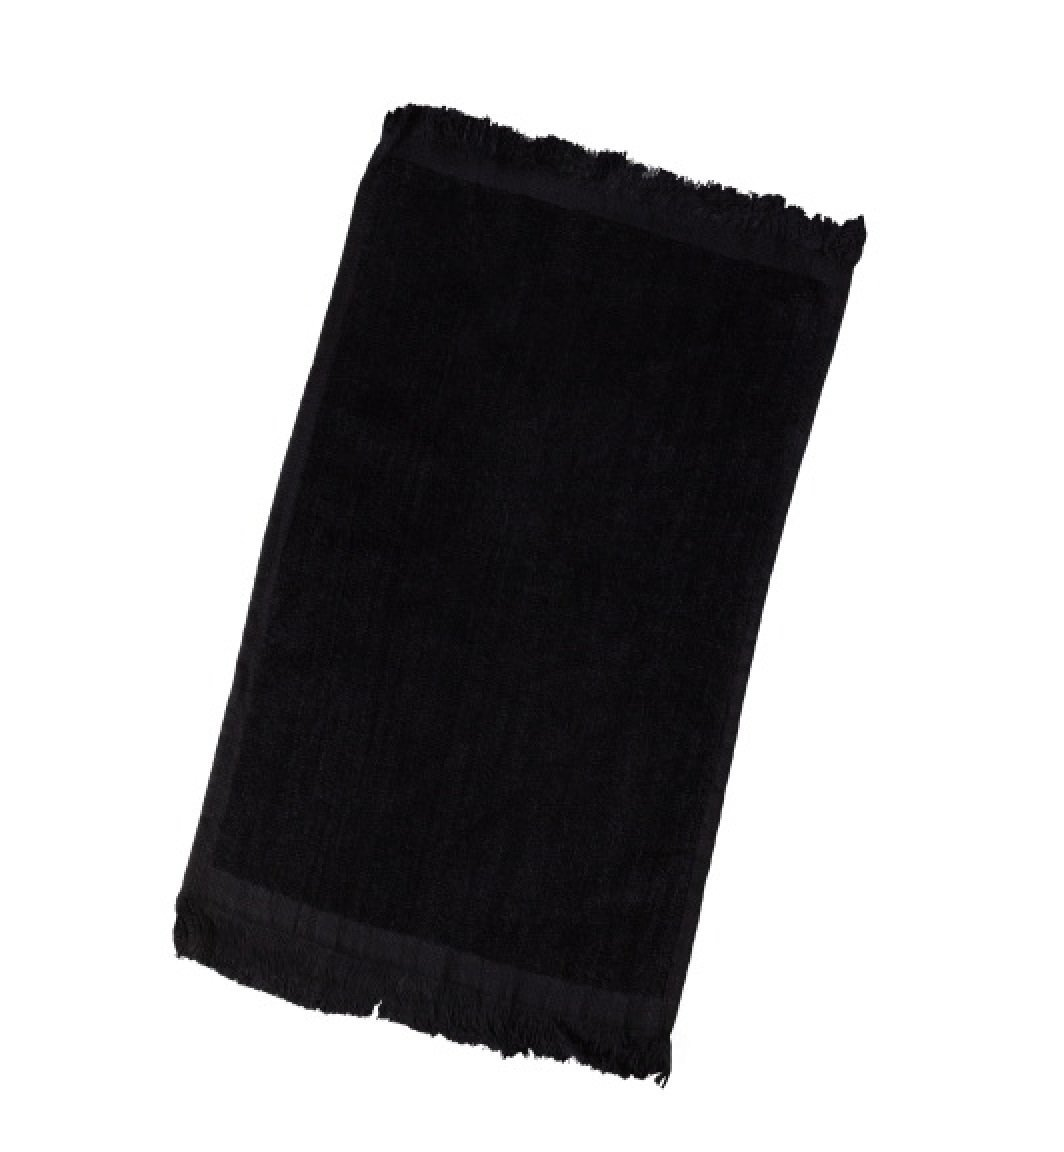 """2 Pack- Cotton Terry Velour Fingertip Golf Hand Towels 11""""x18"""", Sport, Gym, Home Towels by Georgiabags (2, Black)"""